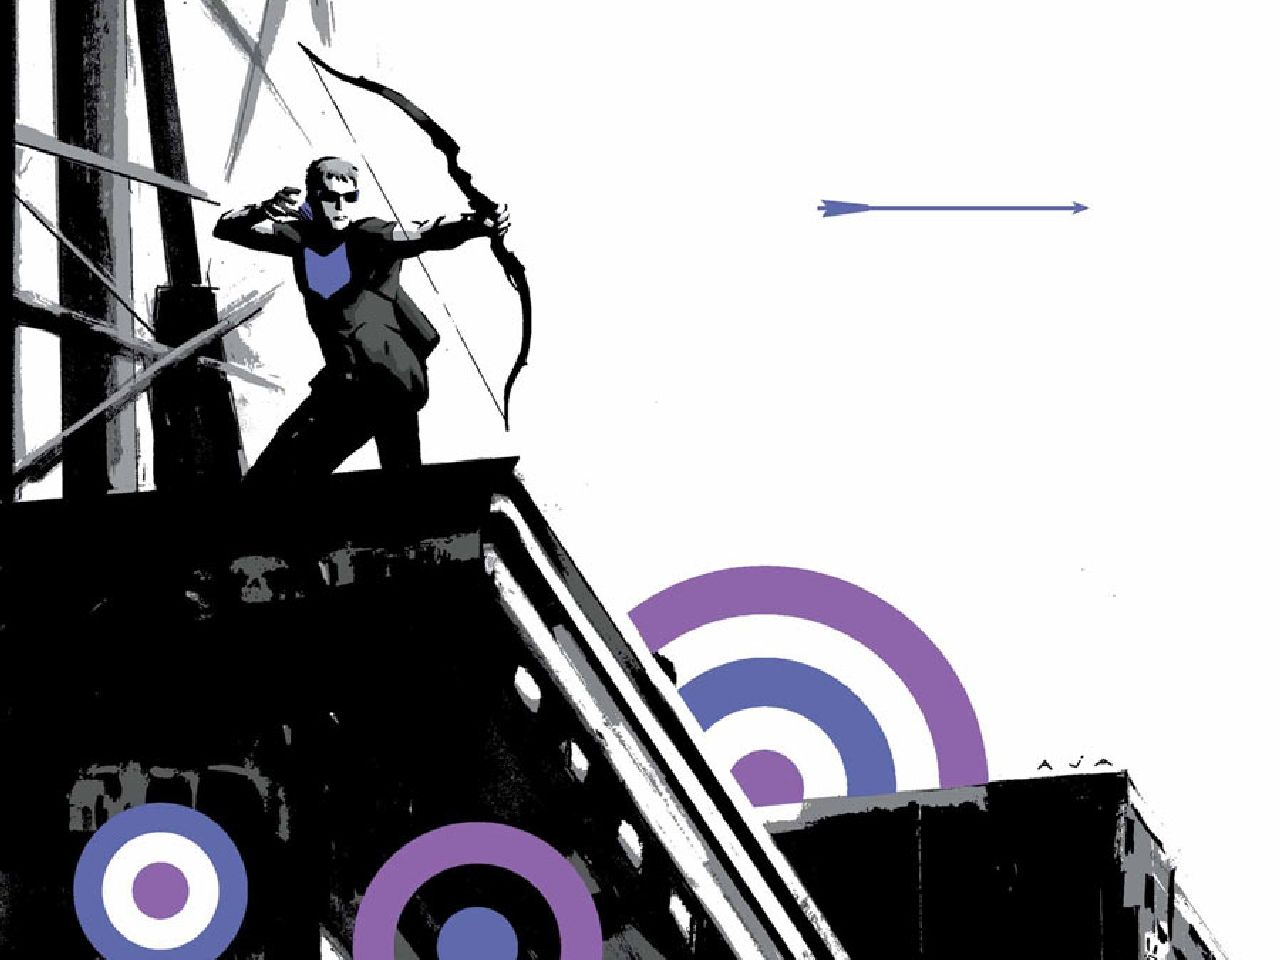 hawkeye computer wallpapers desktop backgrounds Desktop 1280x960